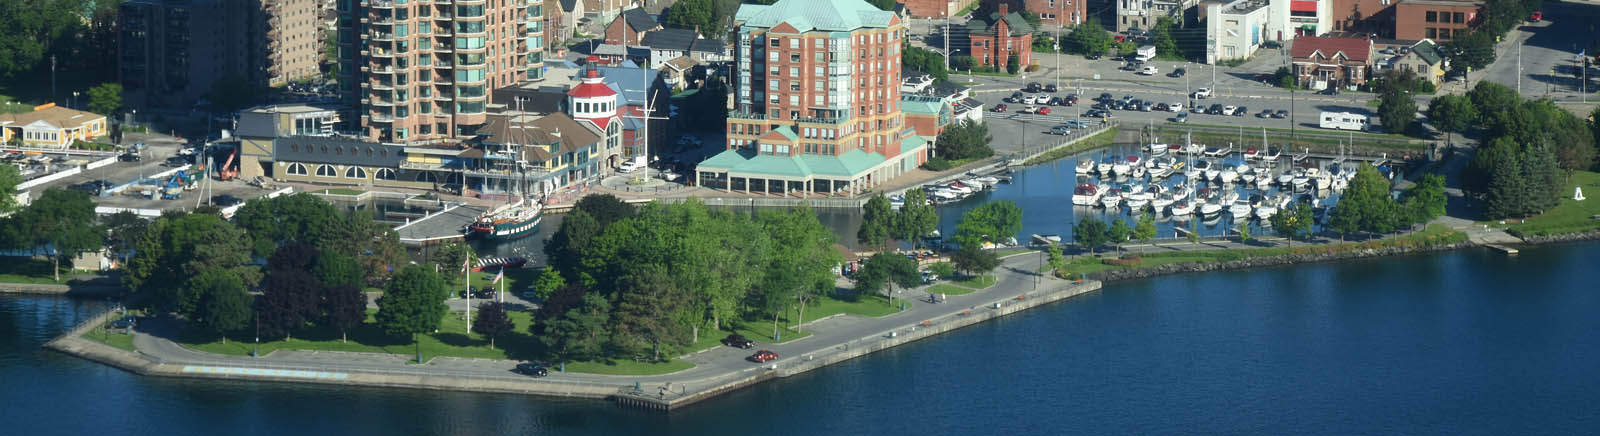 City of Brockville waterfront